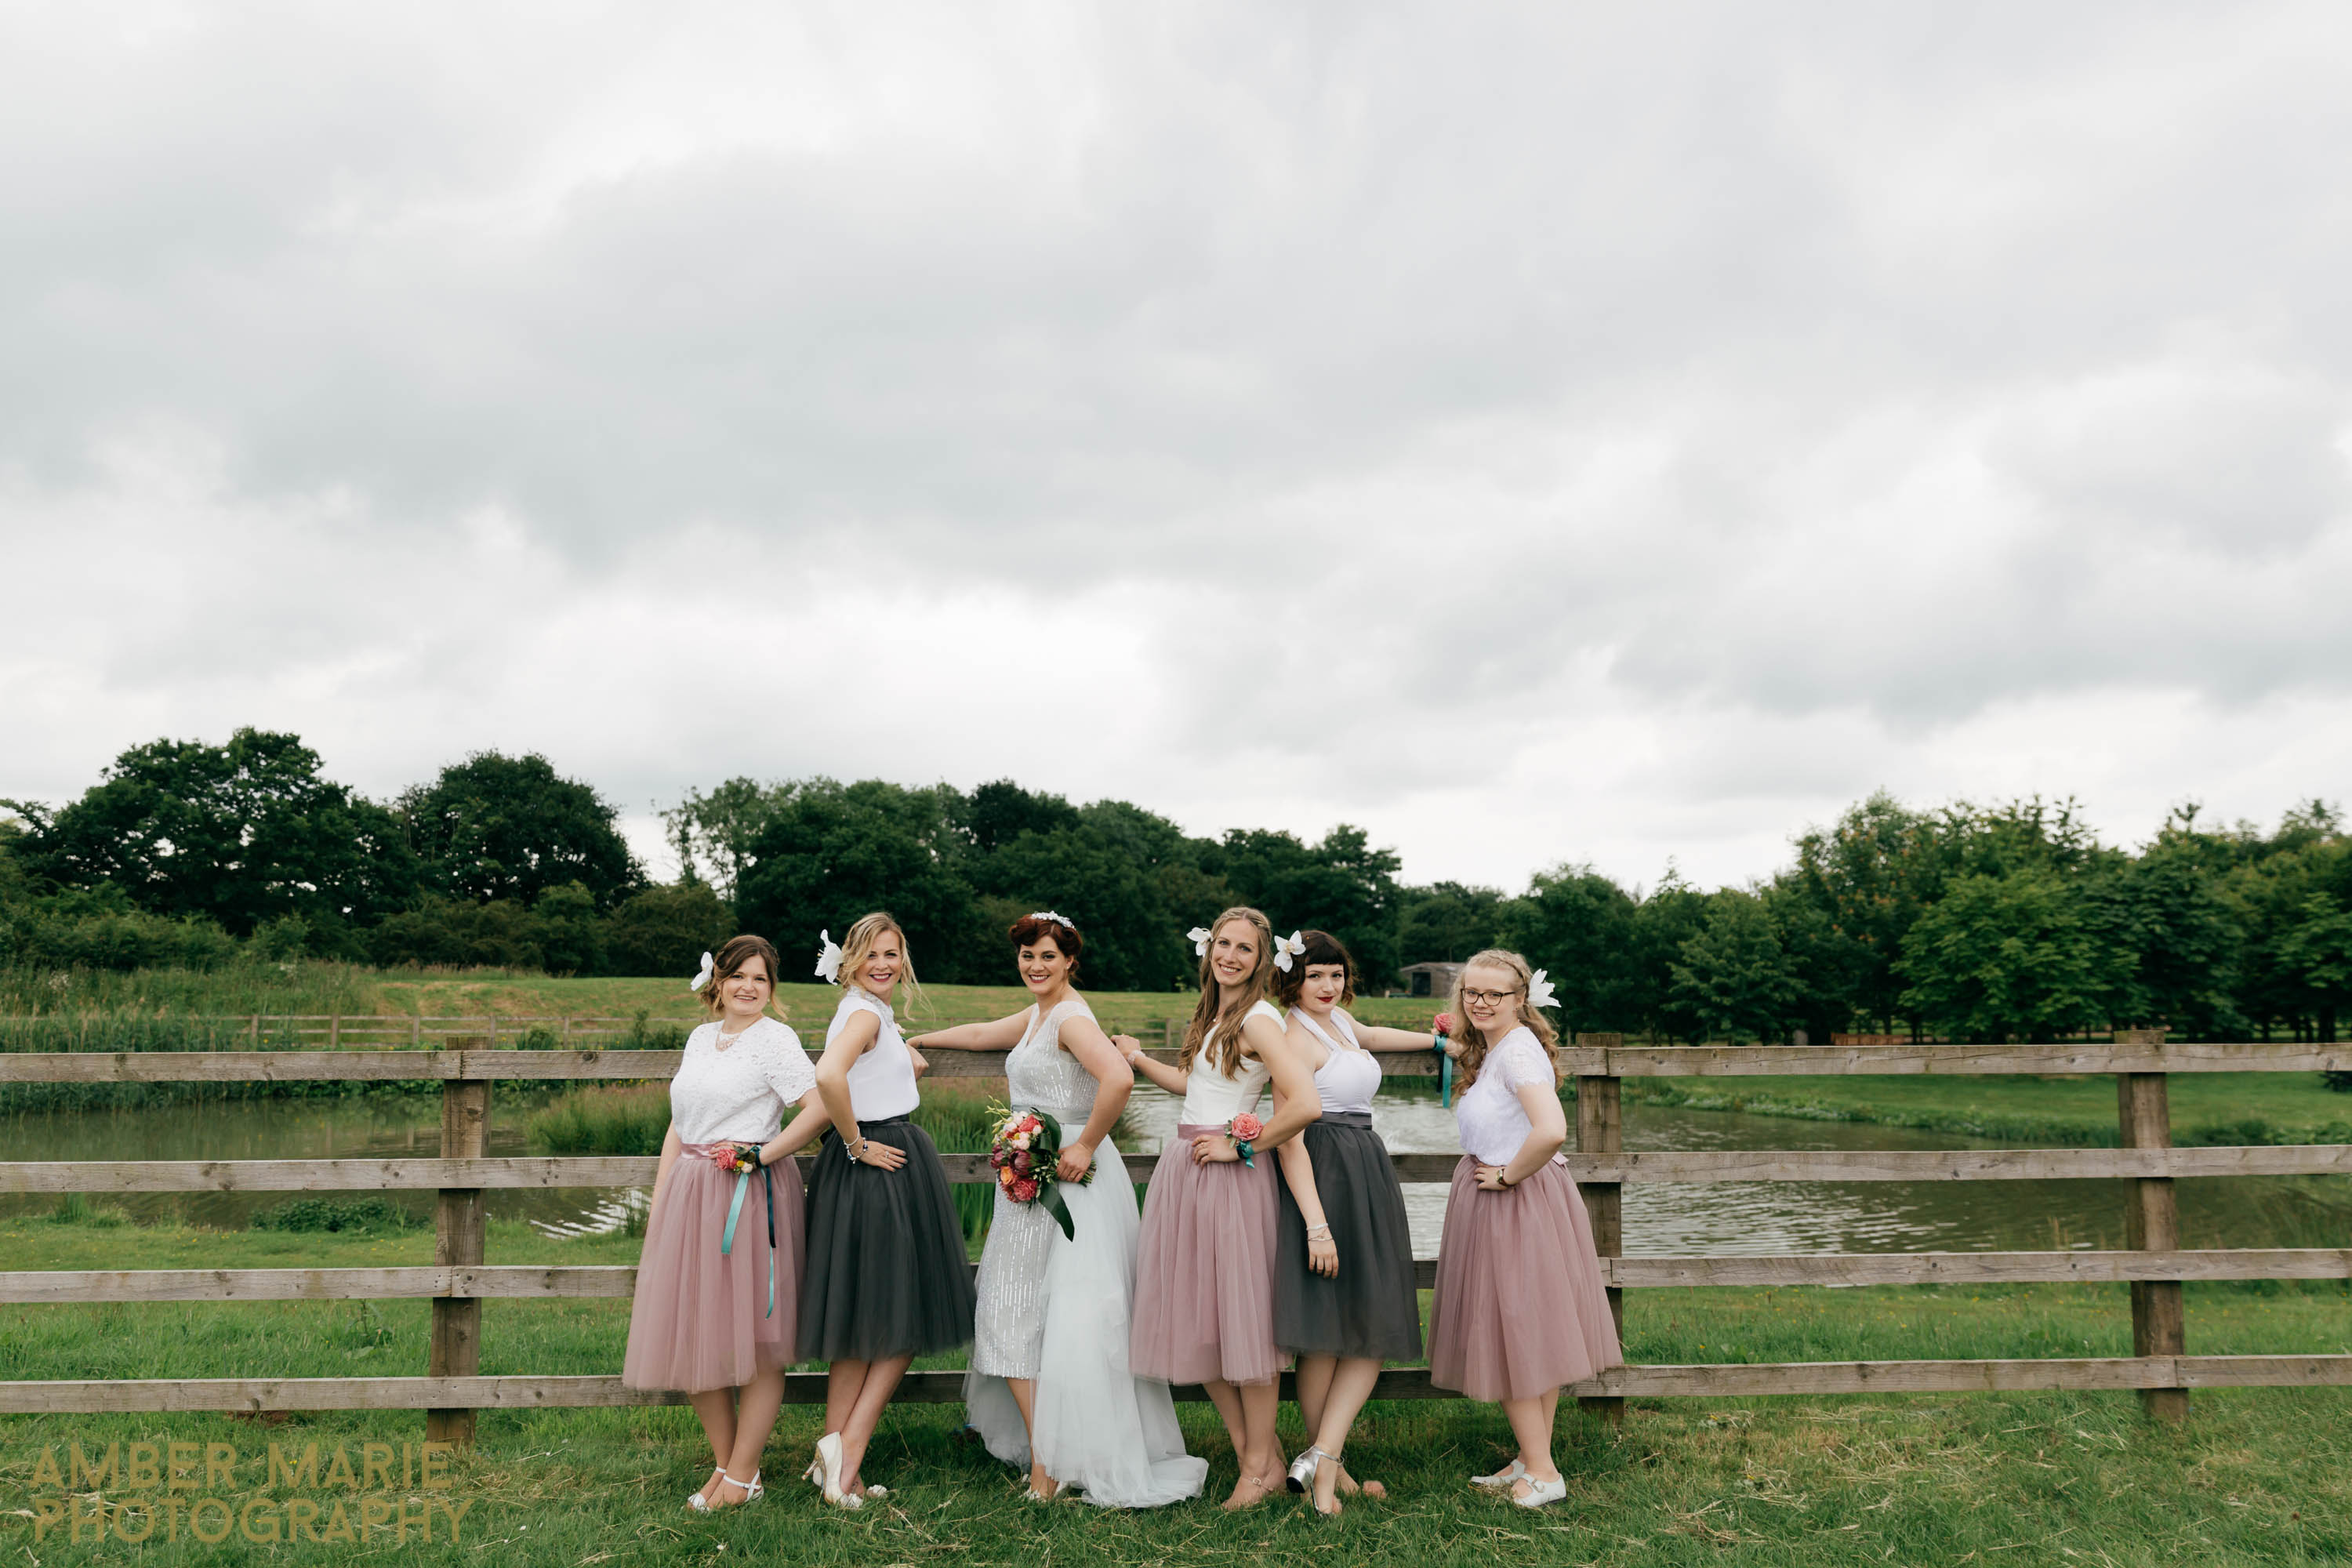 Yorkshire wedding photographers festival wedding oxford